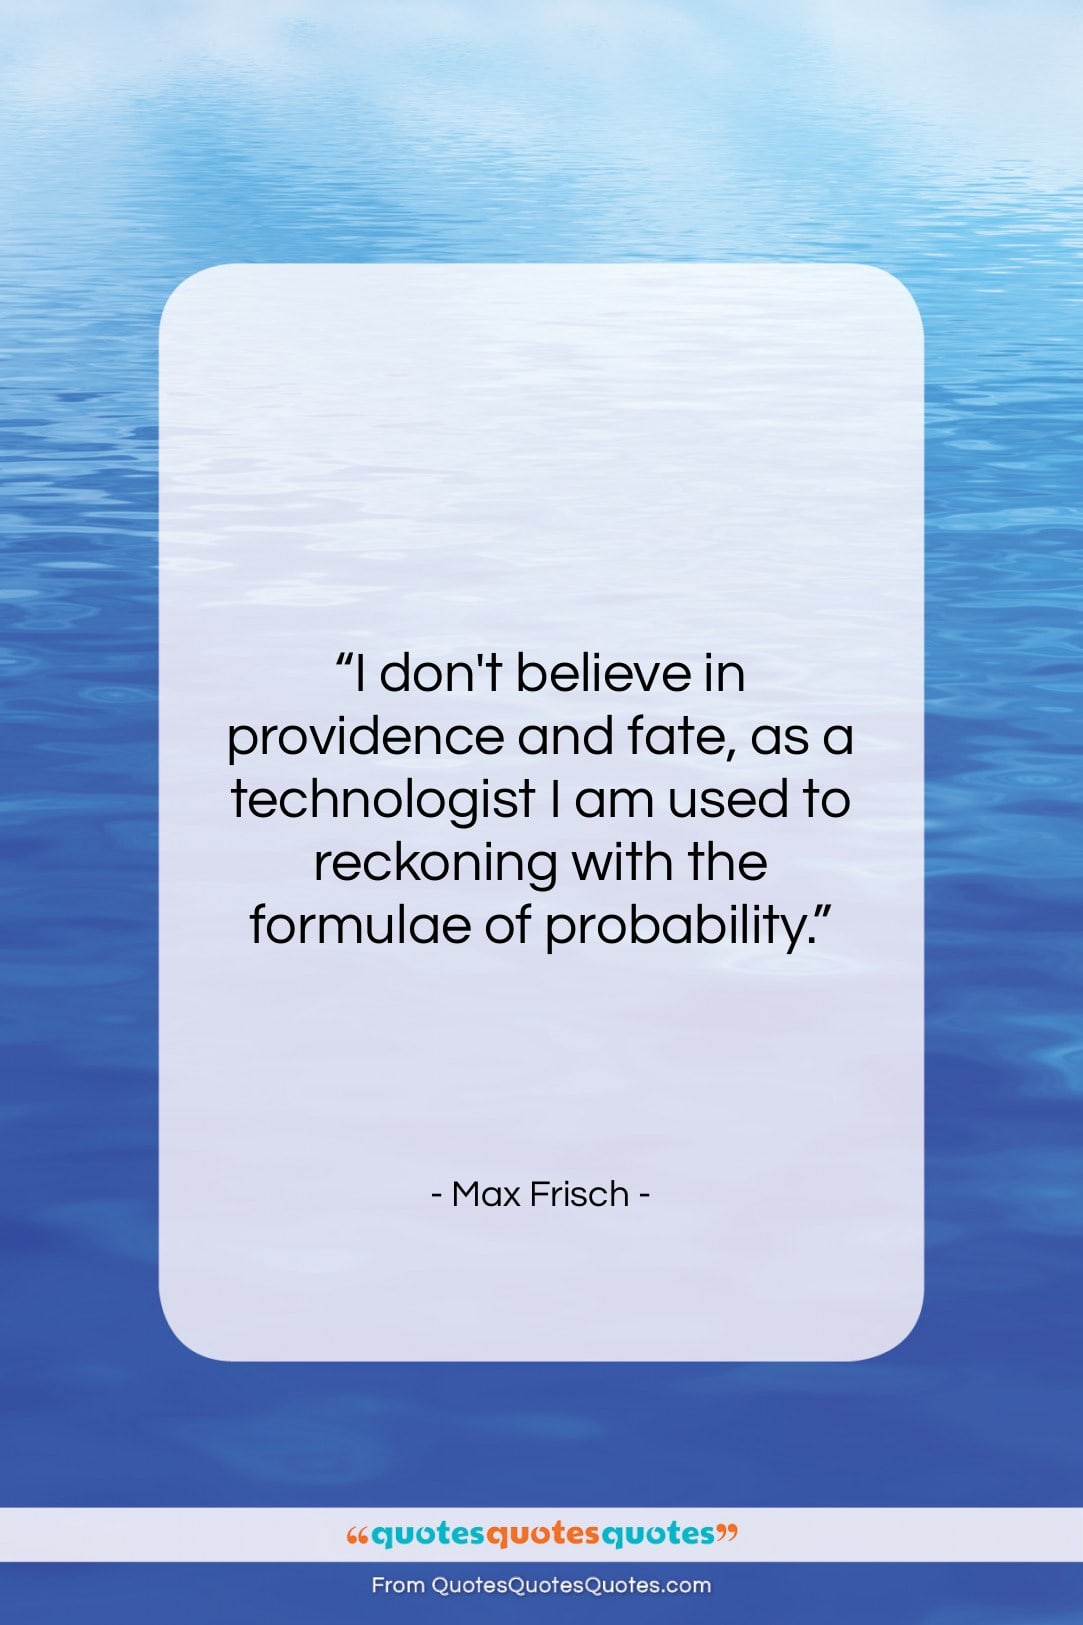 """Max Frisch quote: """"I don't believe in providence and fate,…""""- at QuotesQuotesQuotes.com"""